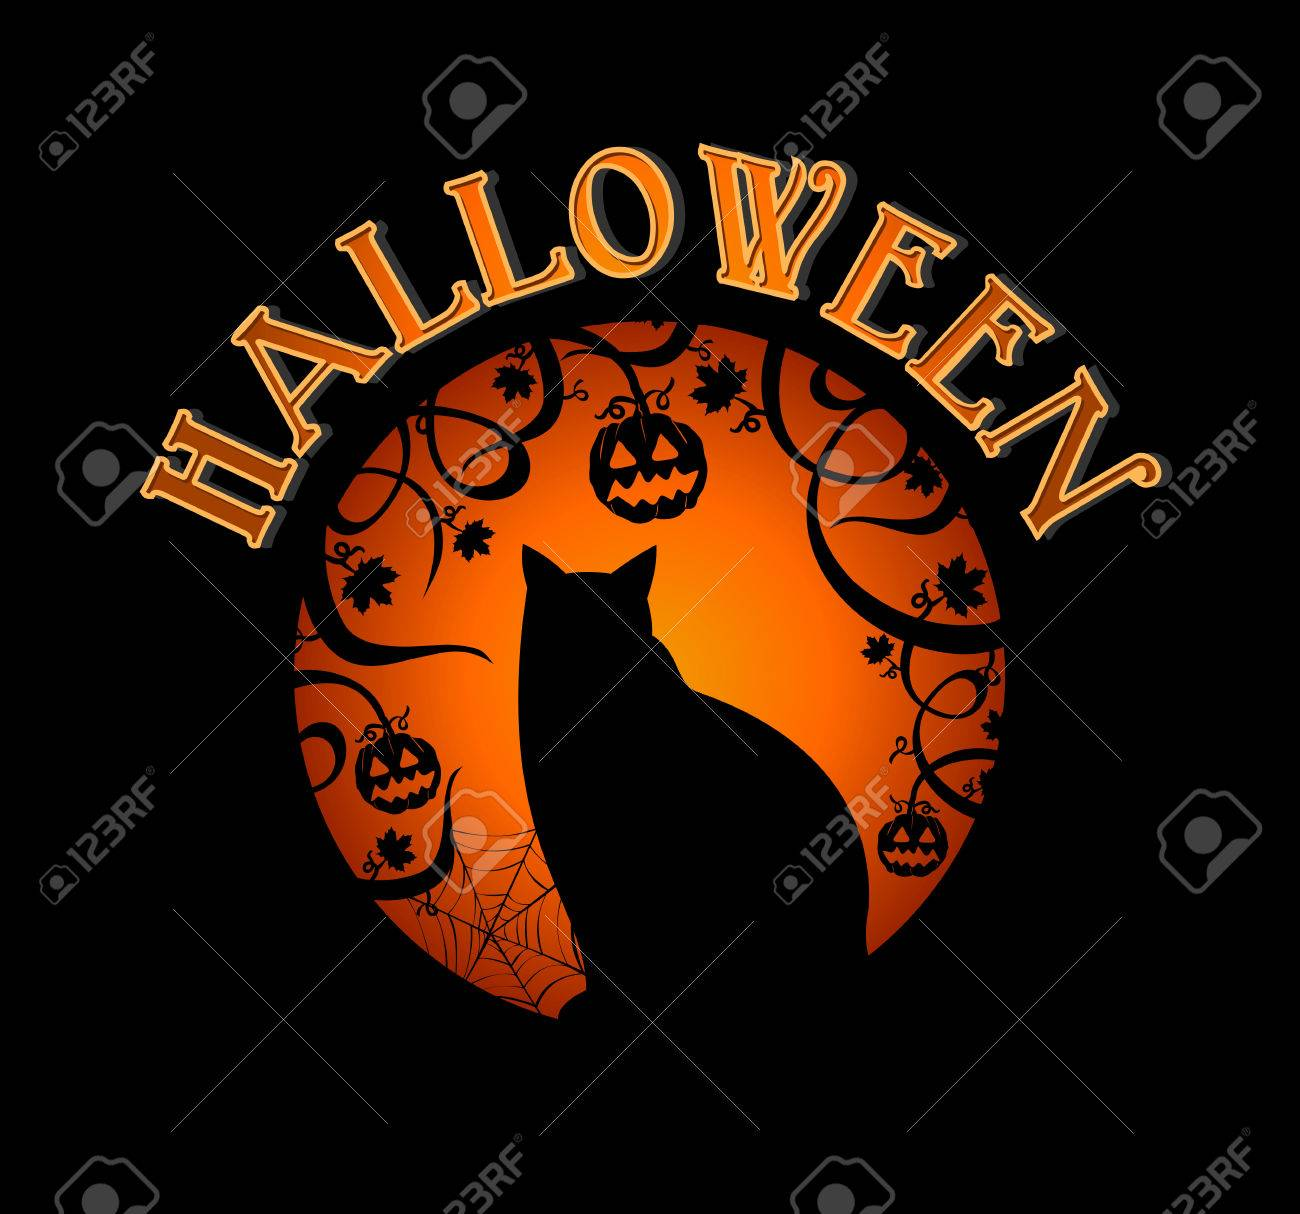 Happy Halloween spooky forest and black cat holiday elements illustration Stock Vector - 22187917